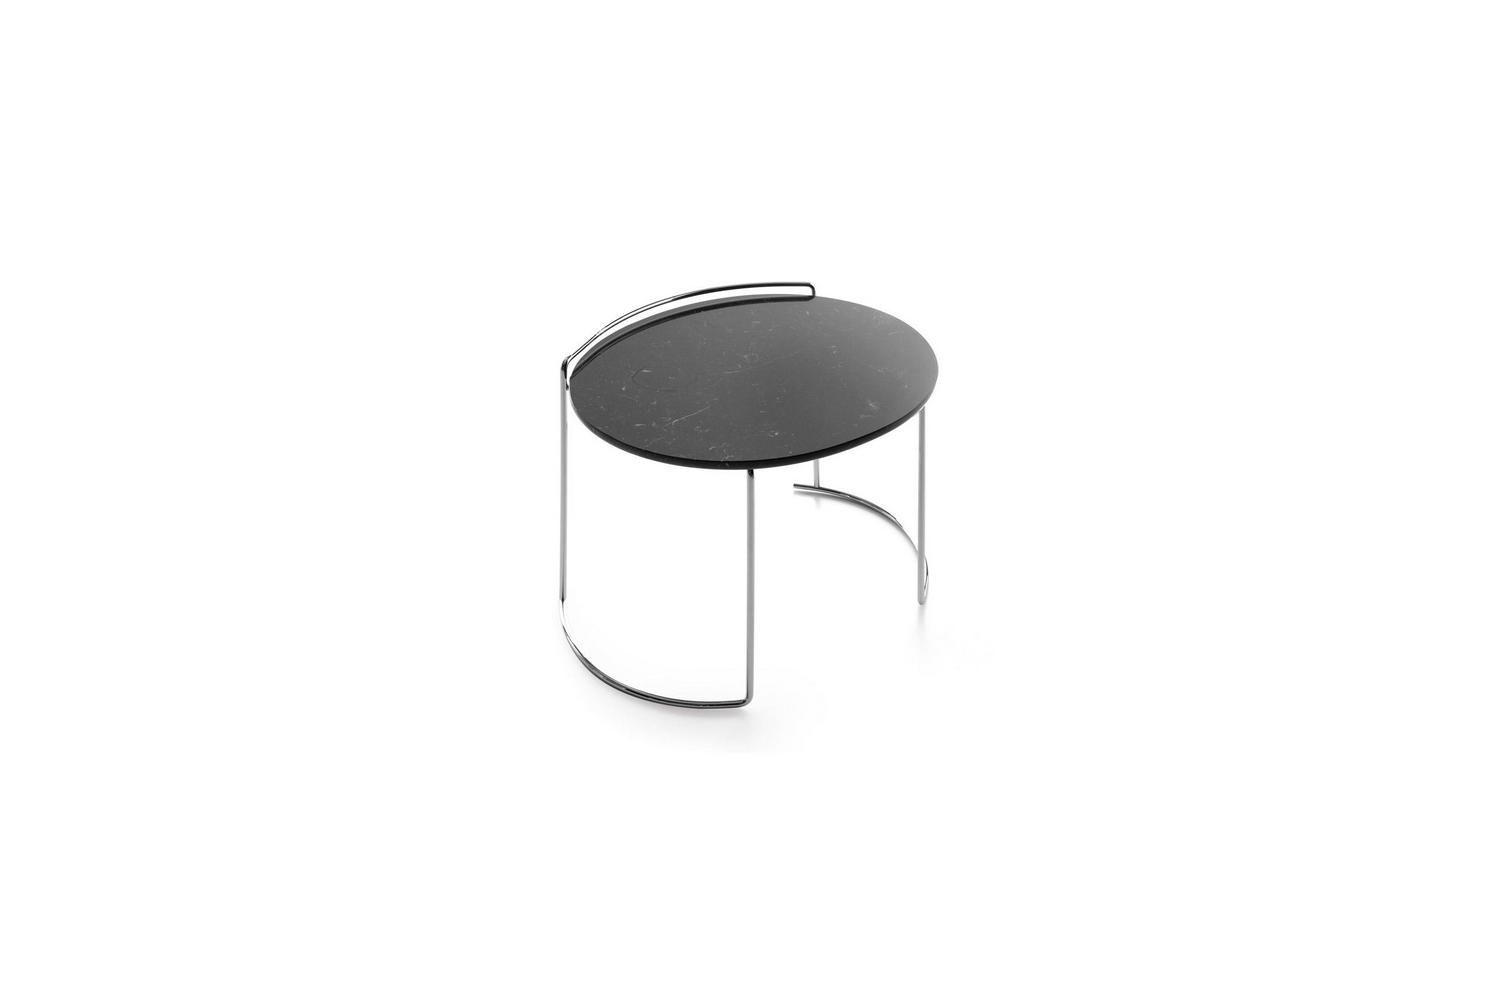 W61 Djuna Side Table by Kazuhide Takahama for Cassina